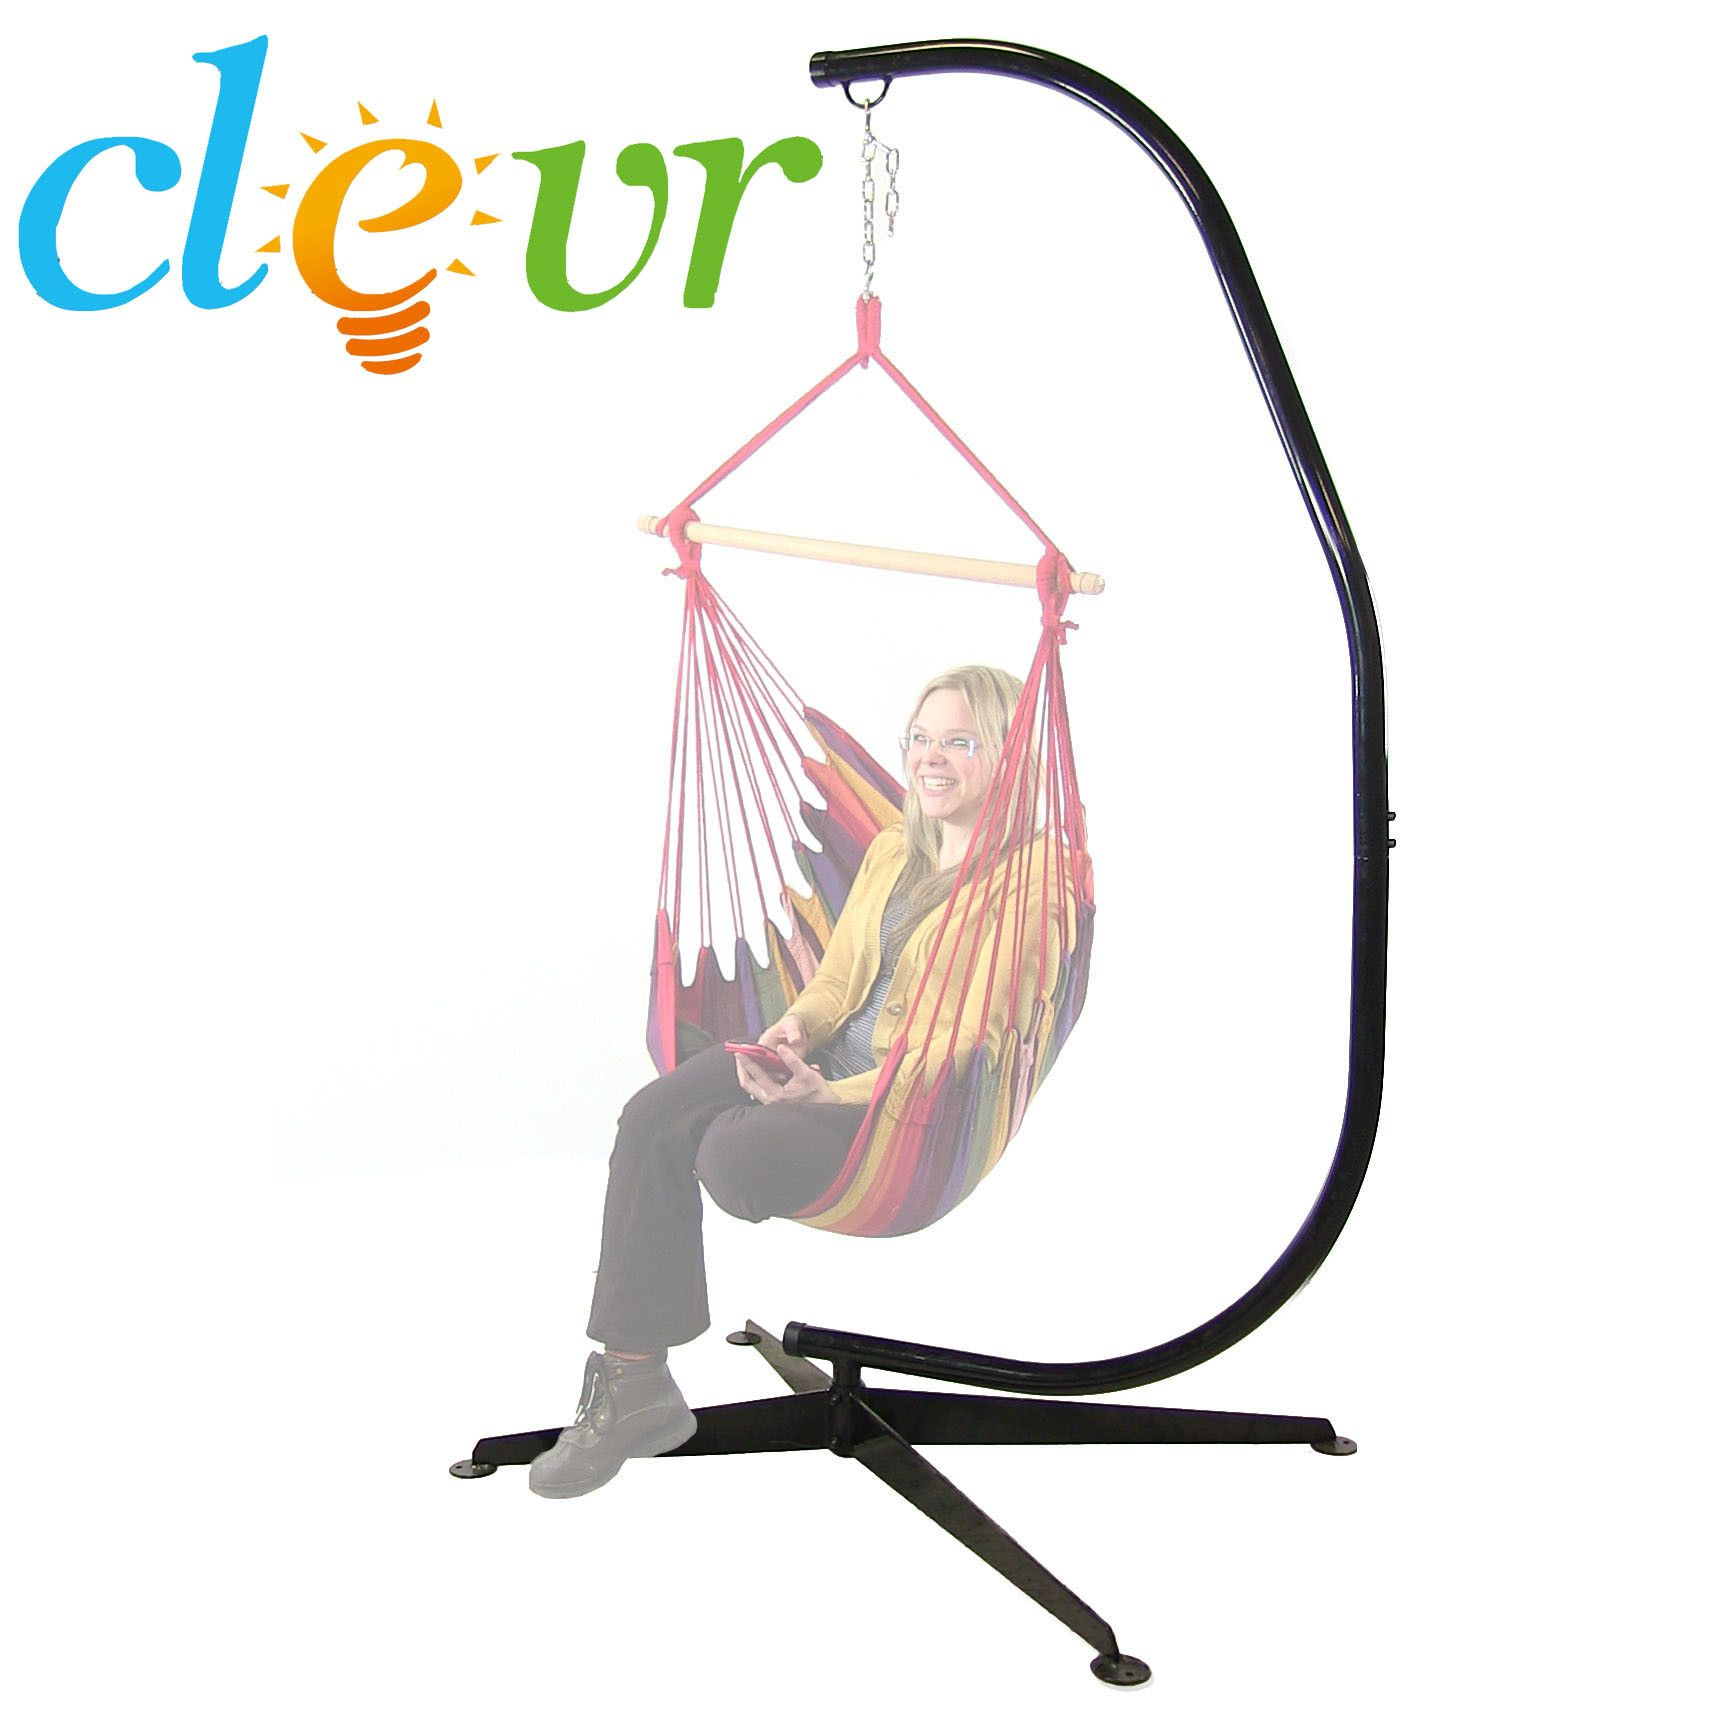 Hammock c stand solid steel construction for hammock air porch swing